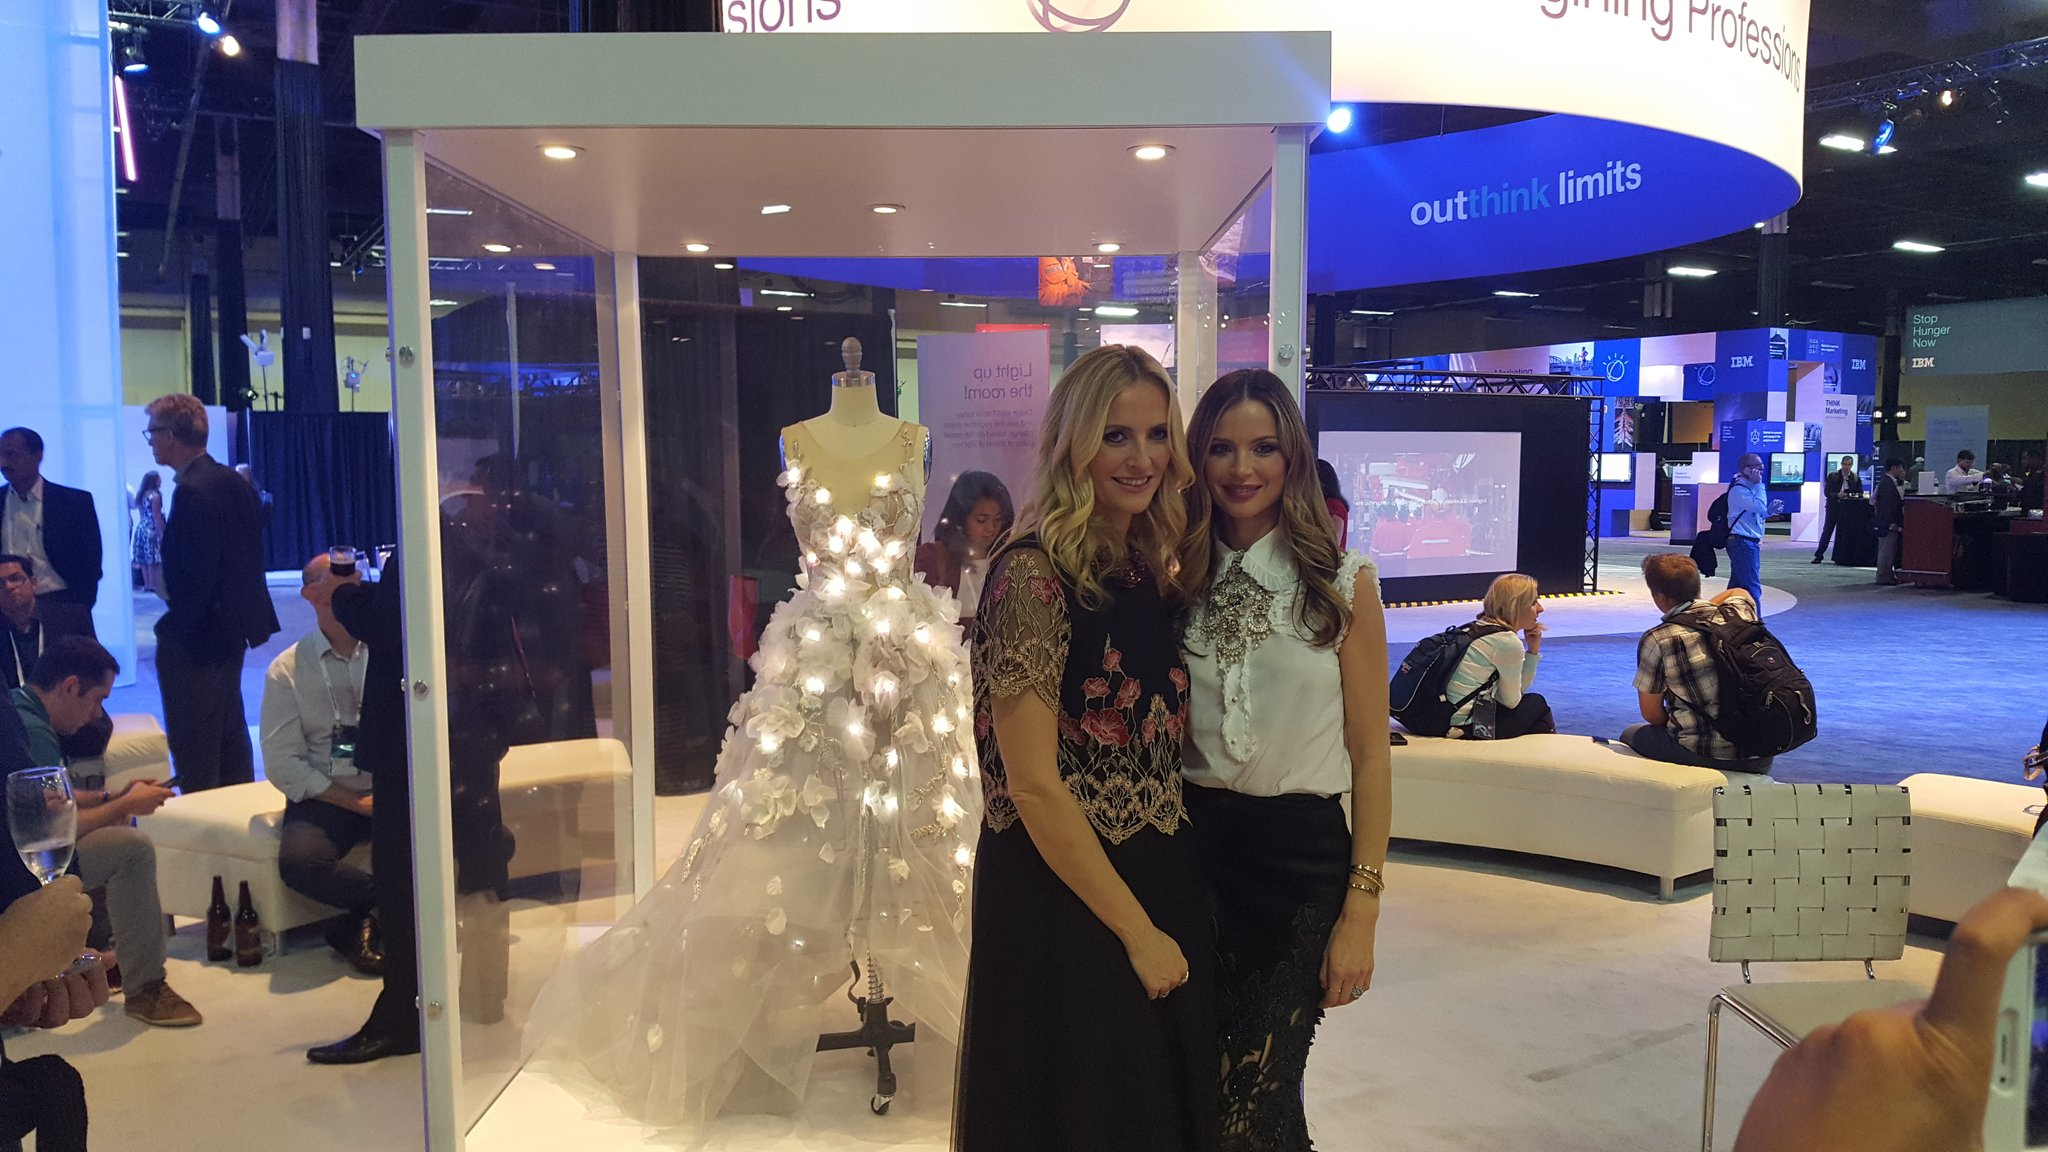 Marchesa and Watson cognitive dress #ibmwow #apcjobs https://t.co/VGIsBOVCPV